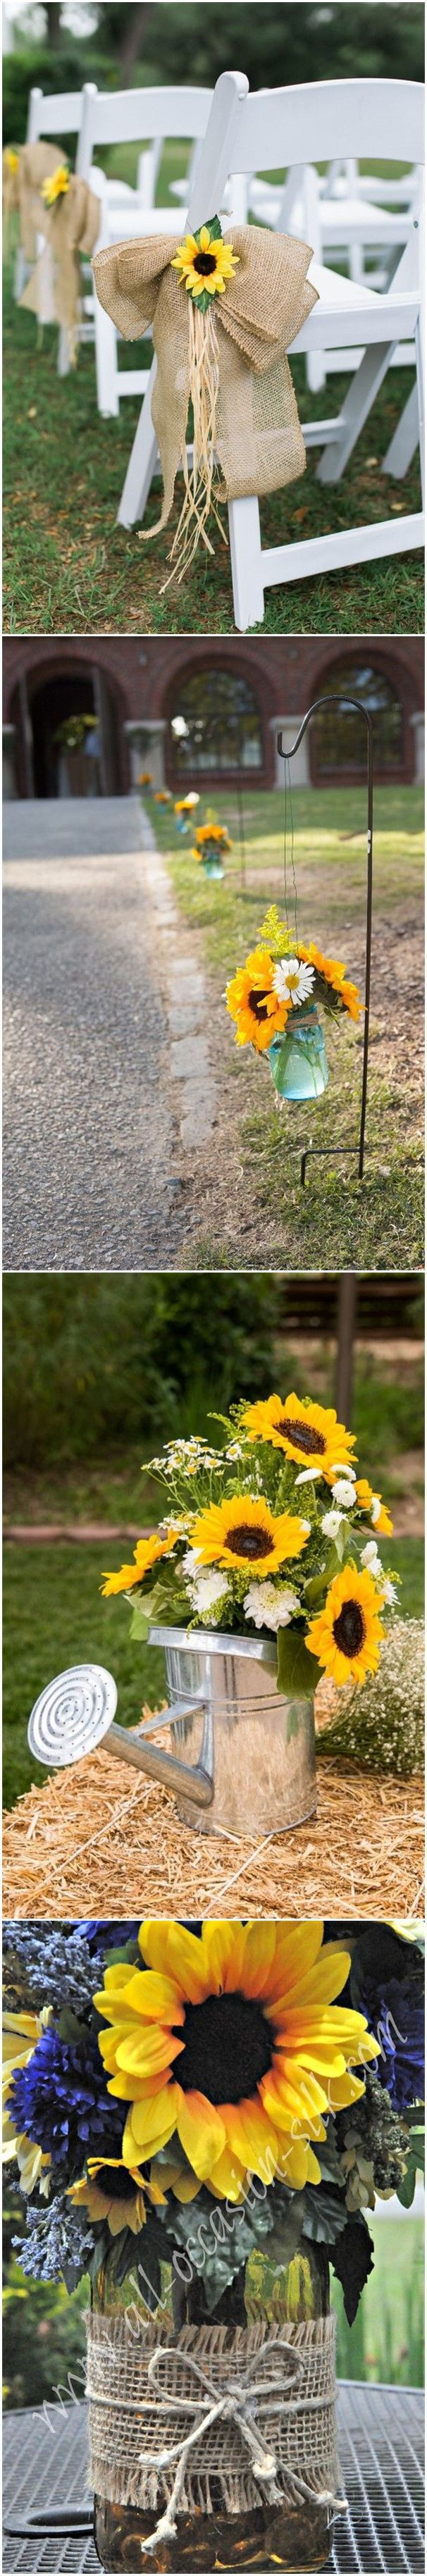 Rustic Weddings » 23 Bright Sunflower Wedding Decoration Ideas For Your Rustic …